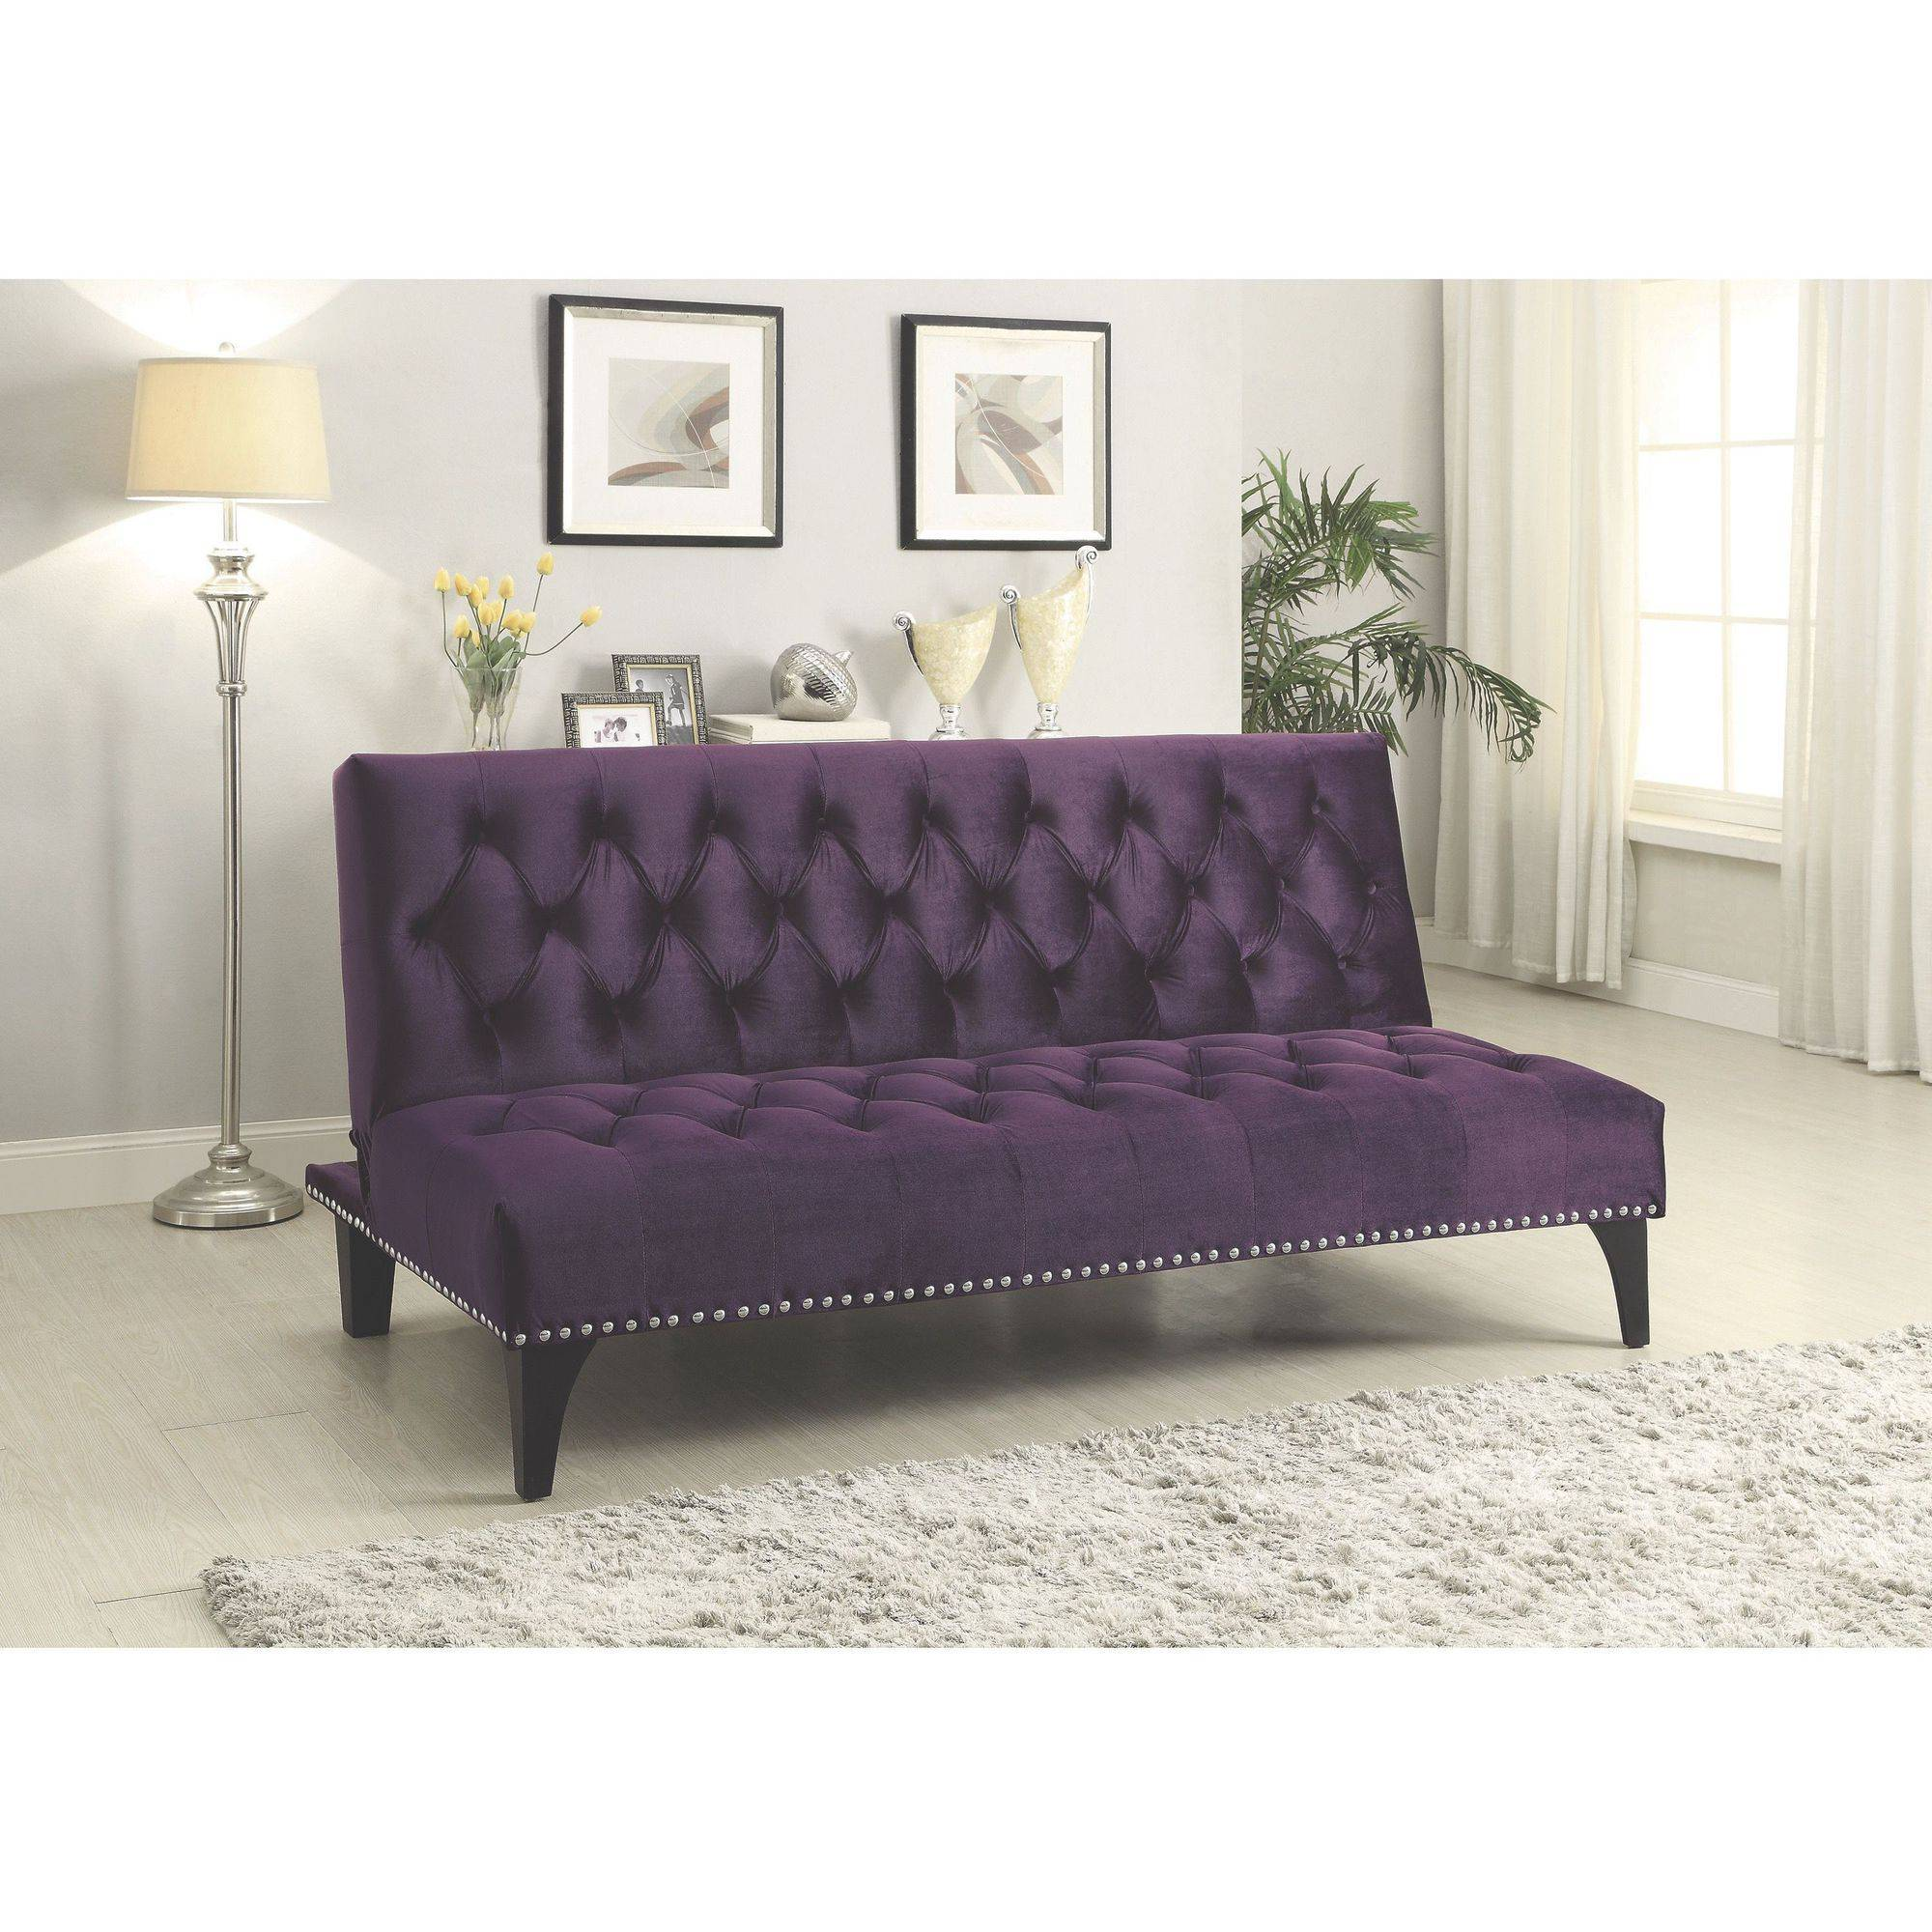 Coaster Company Purple Sofa Bed